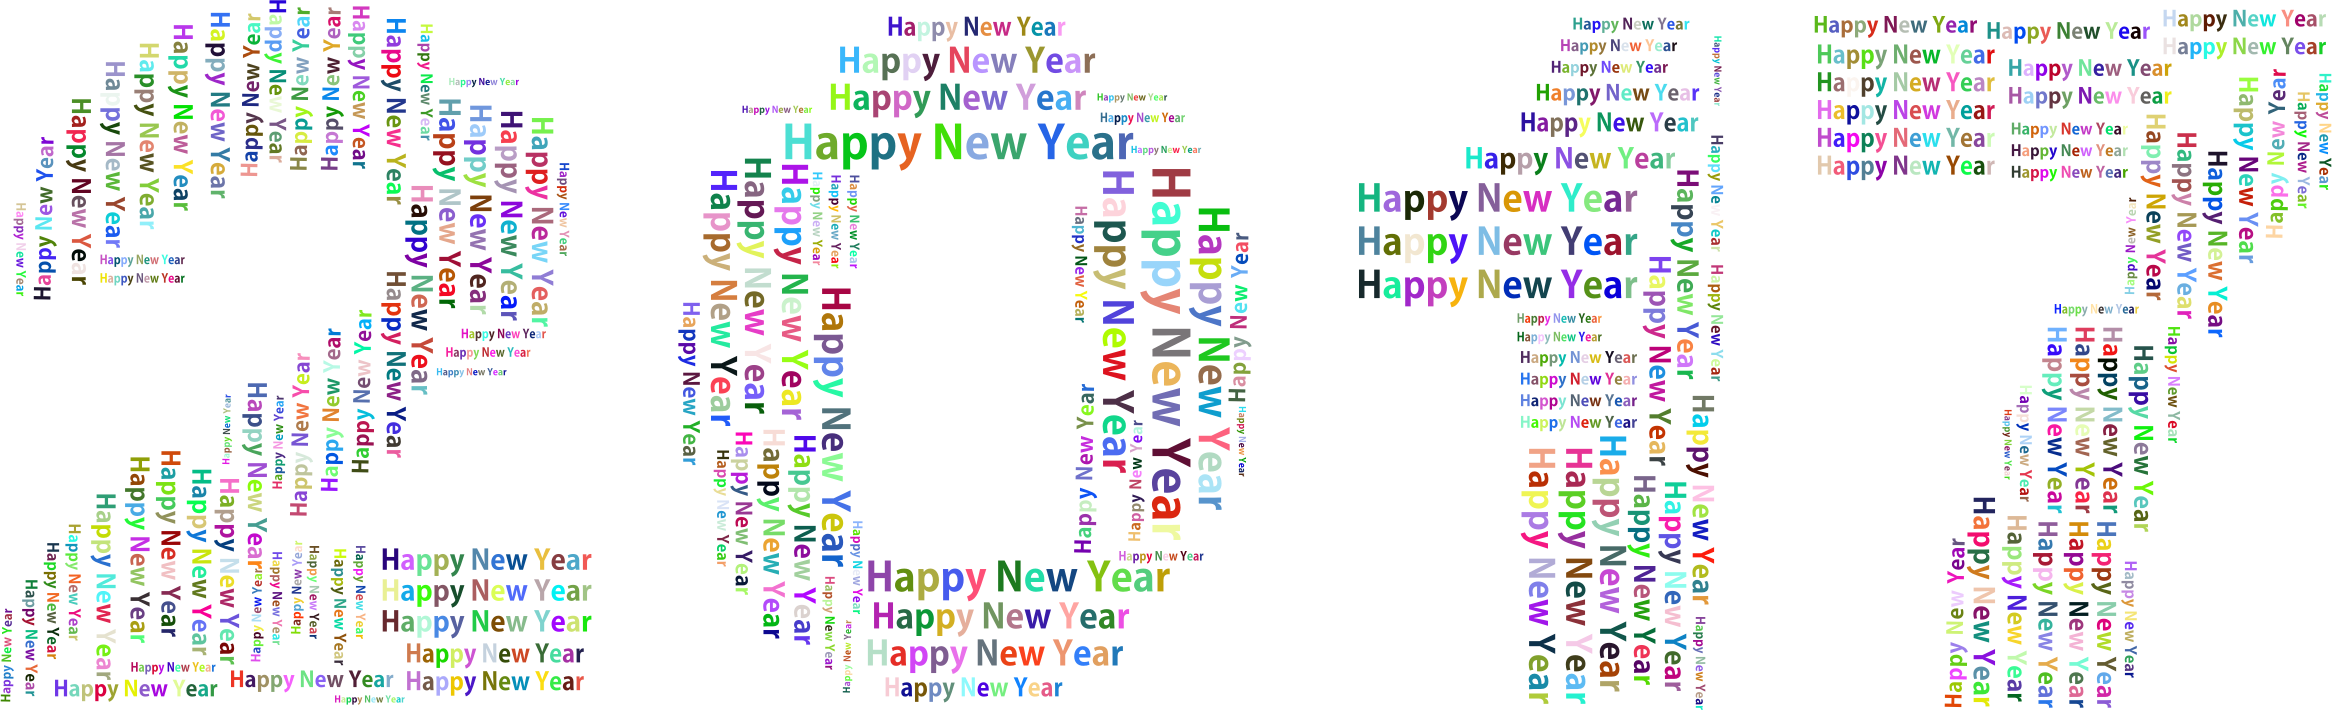 Prismatic Happy New Year 2017 Word Cloud No Background by GDJ